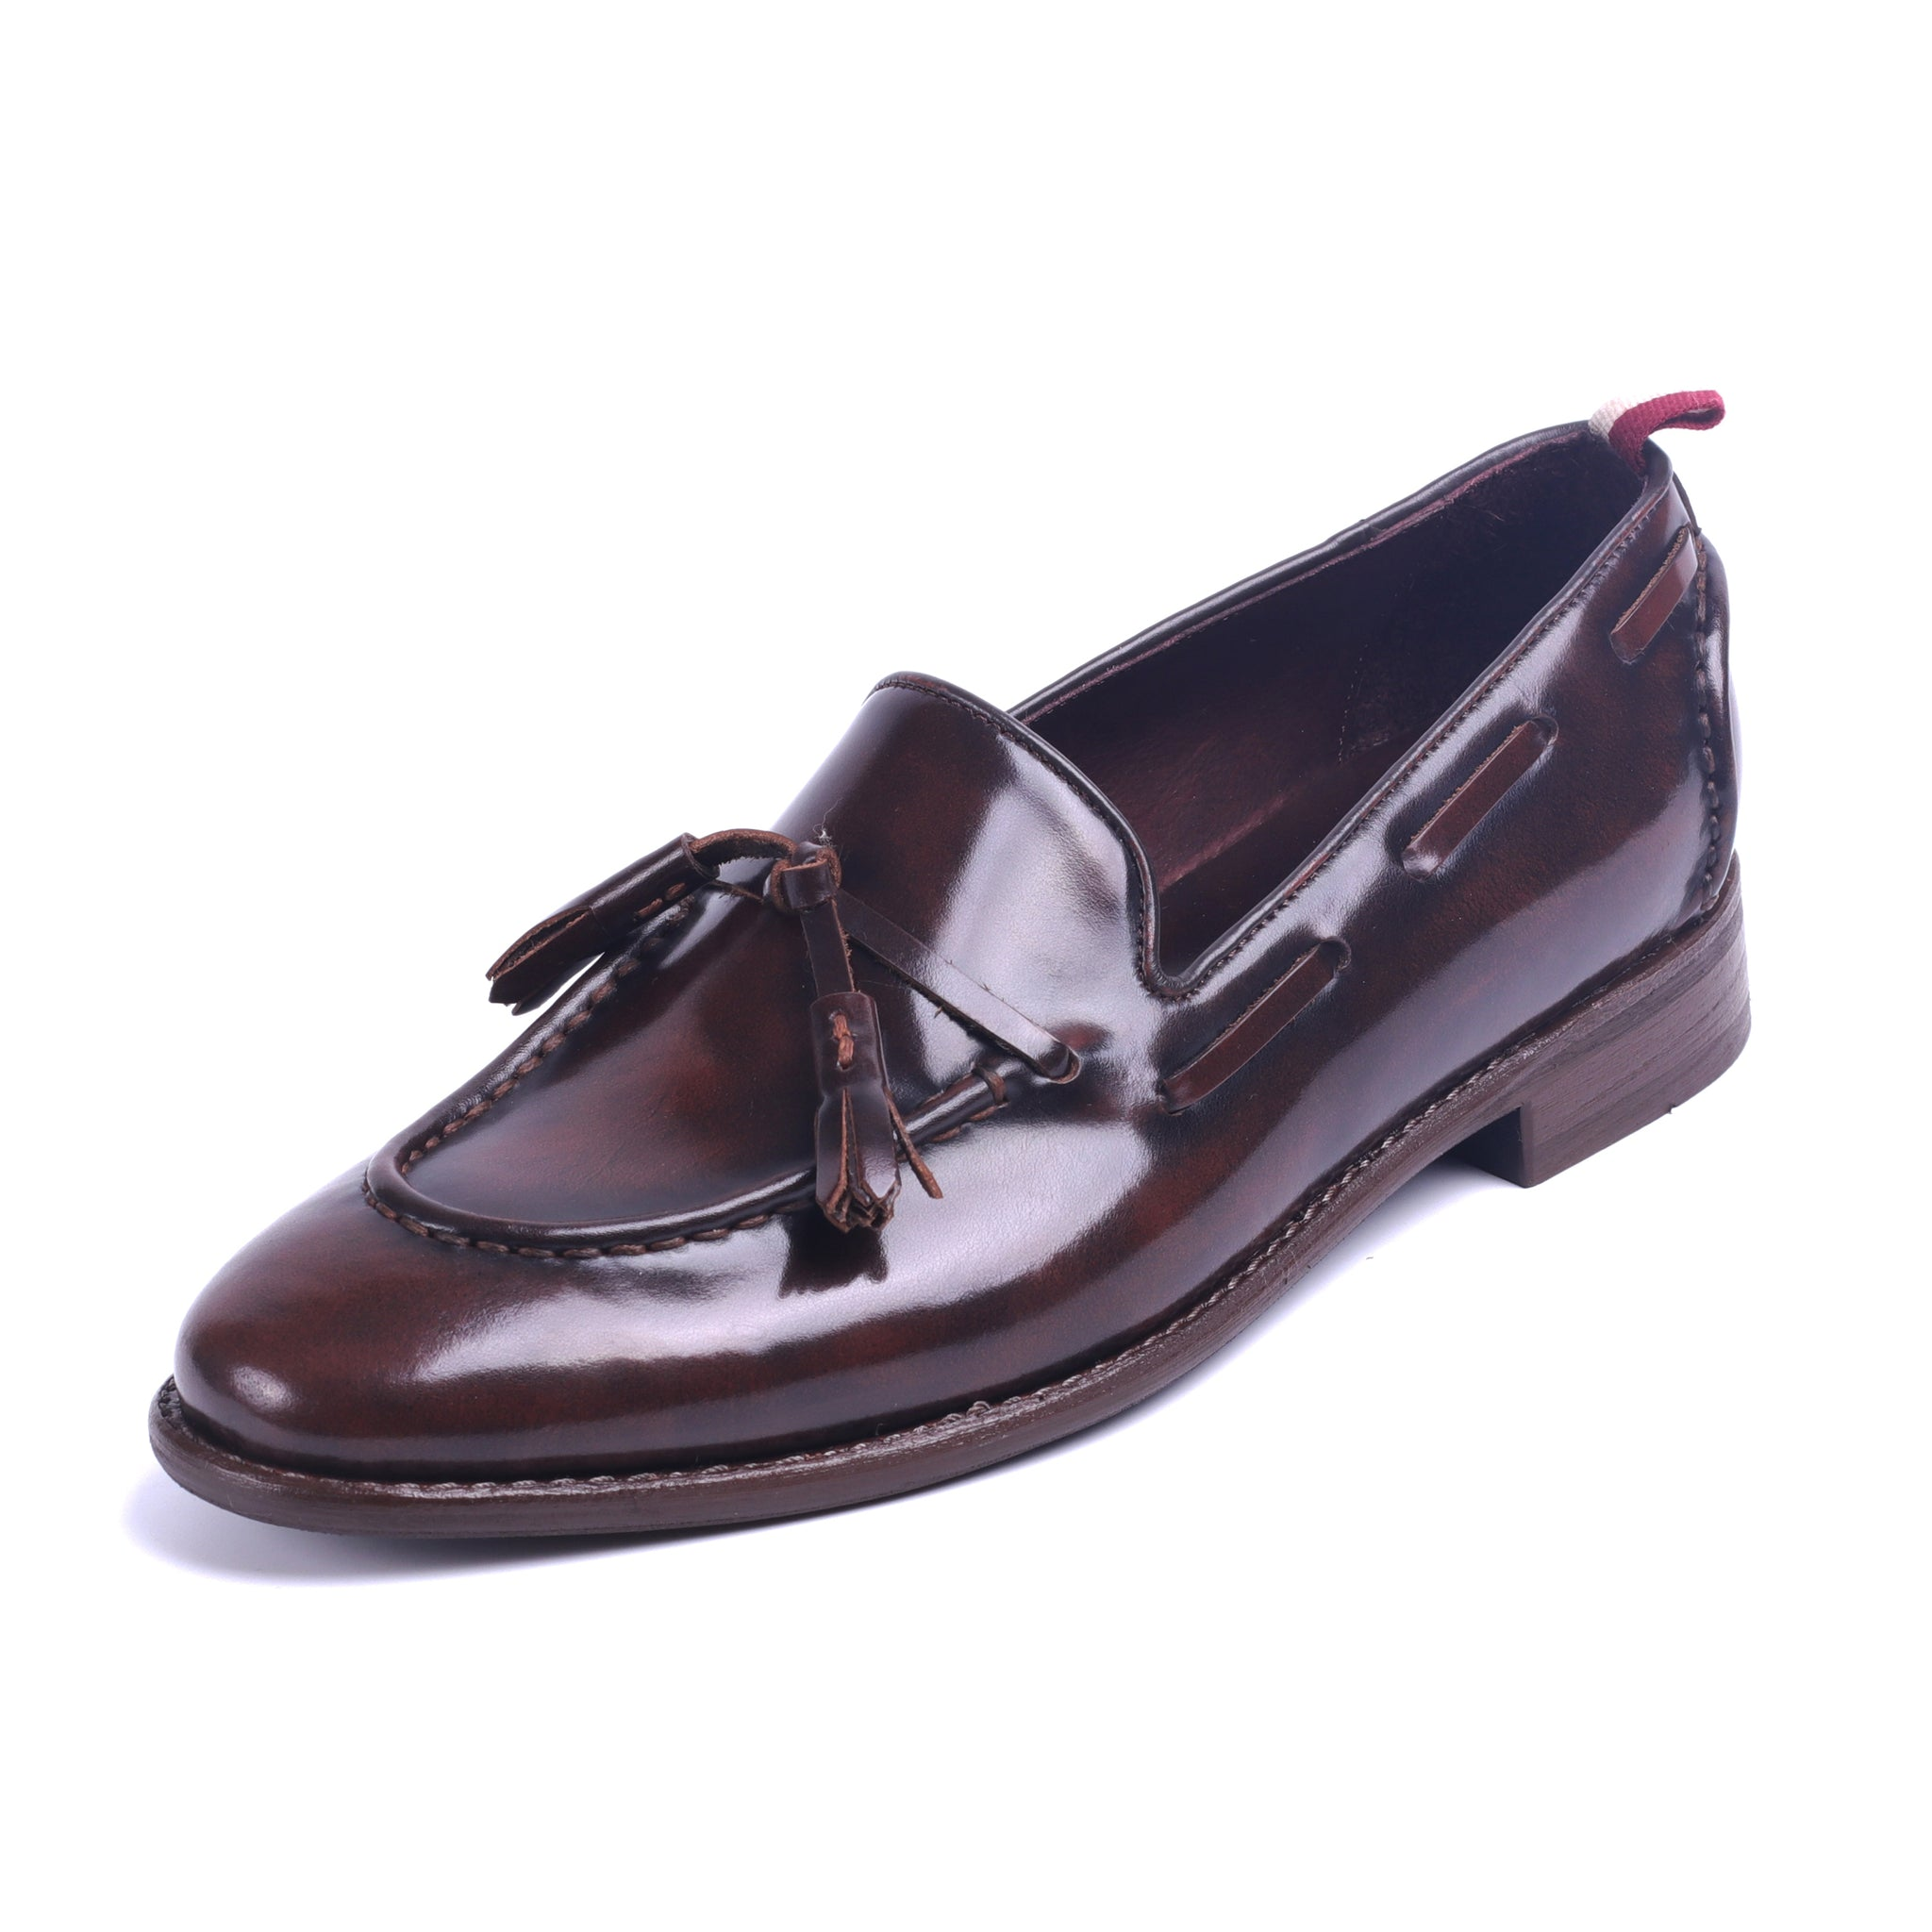 GYW Tassel Loafer - Grape Wine